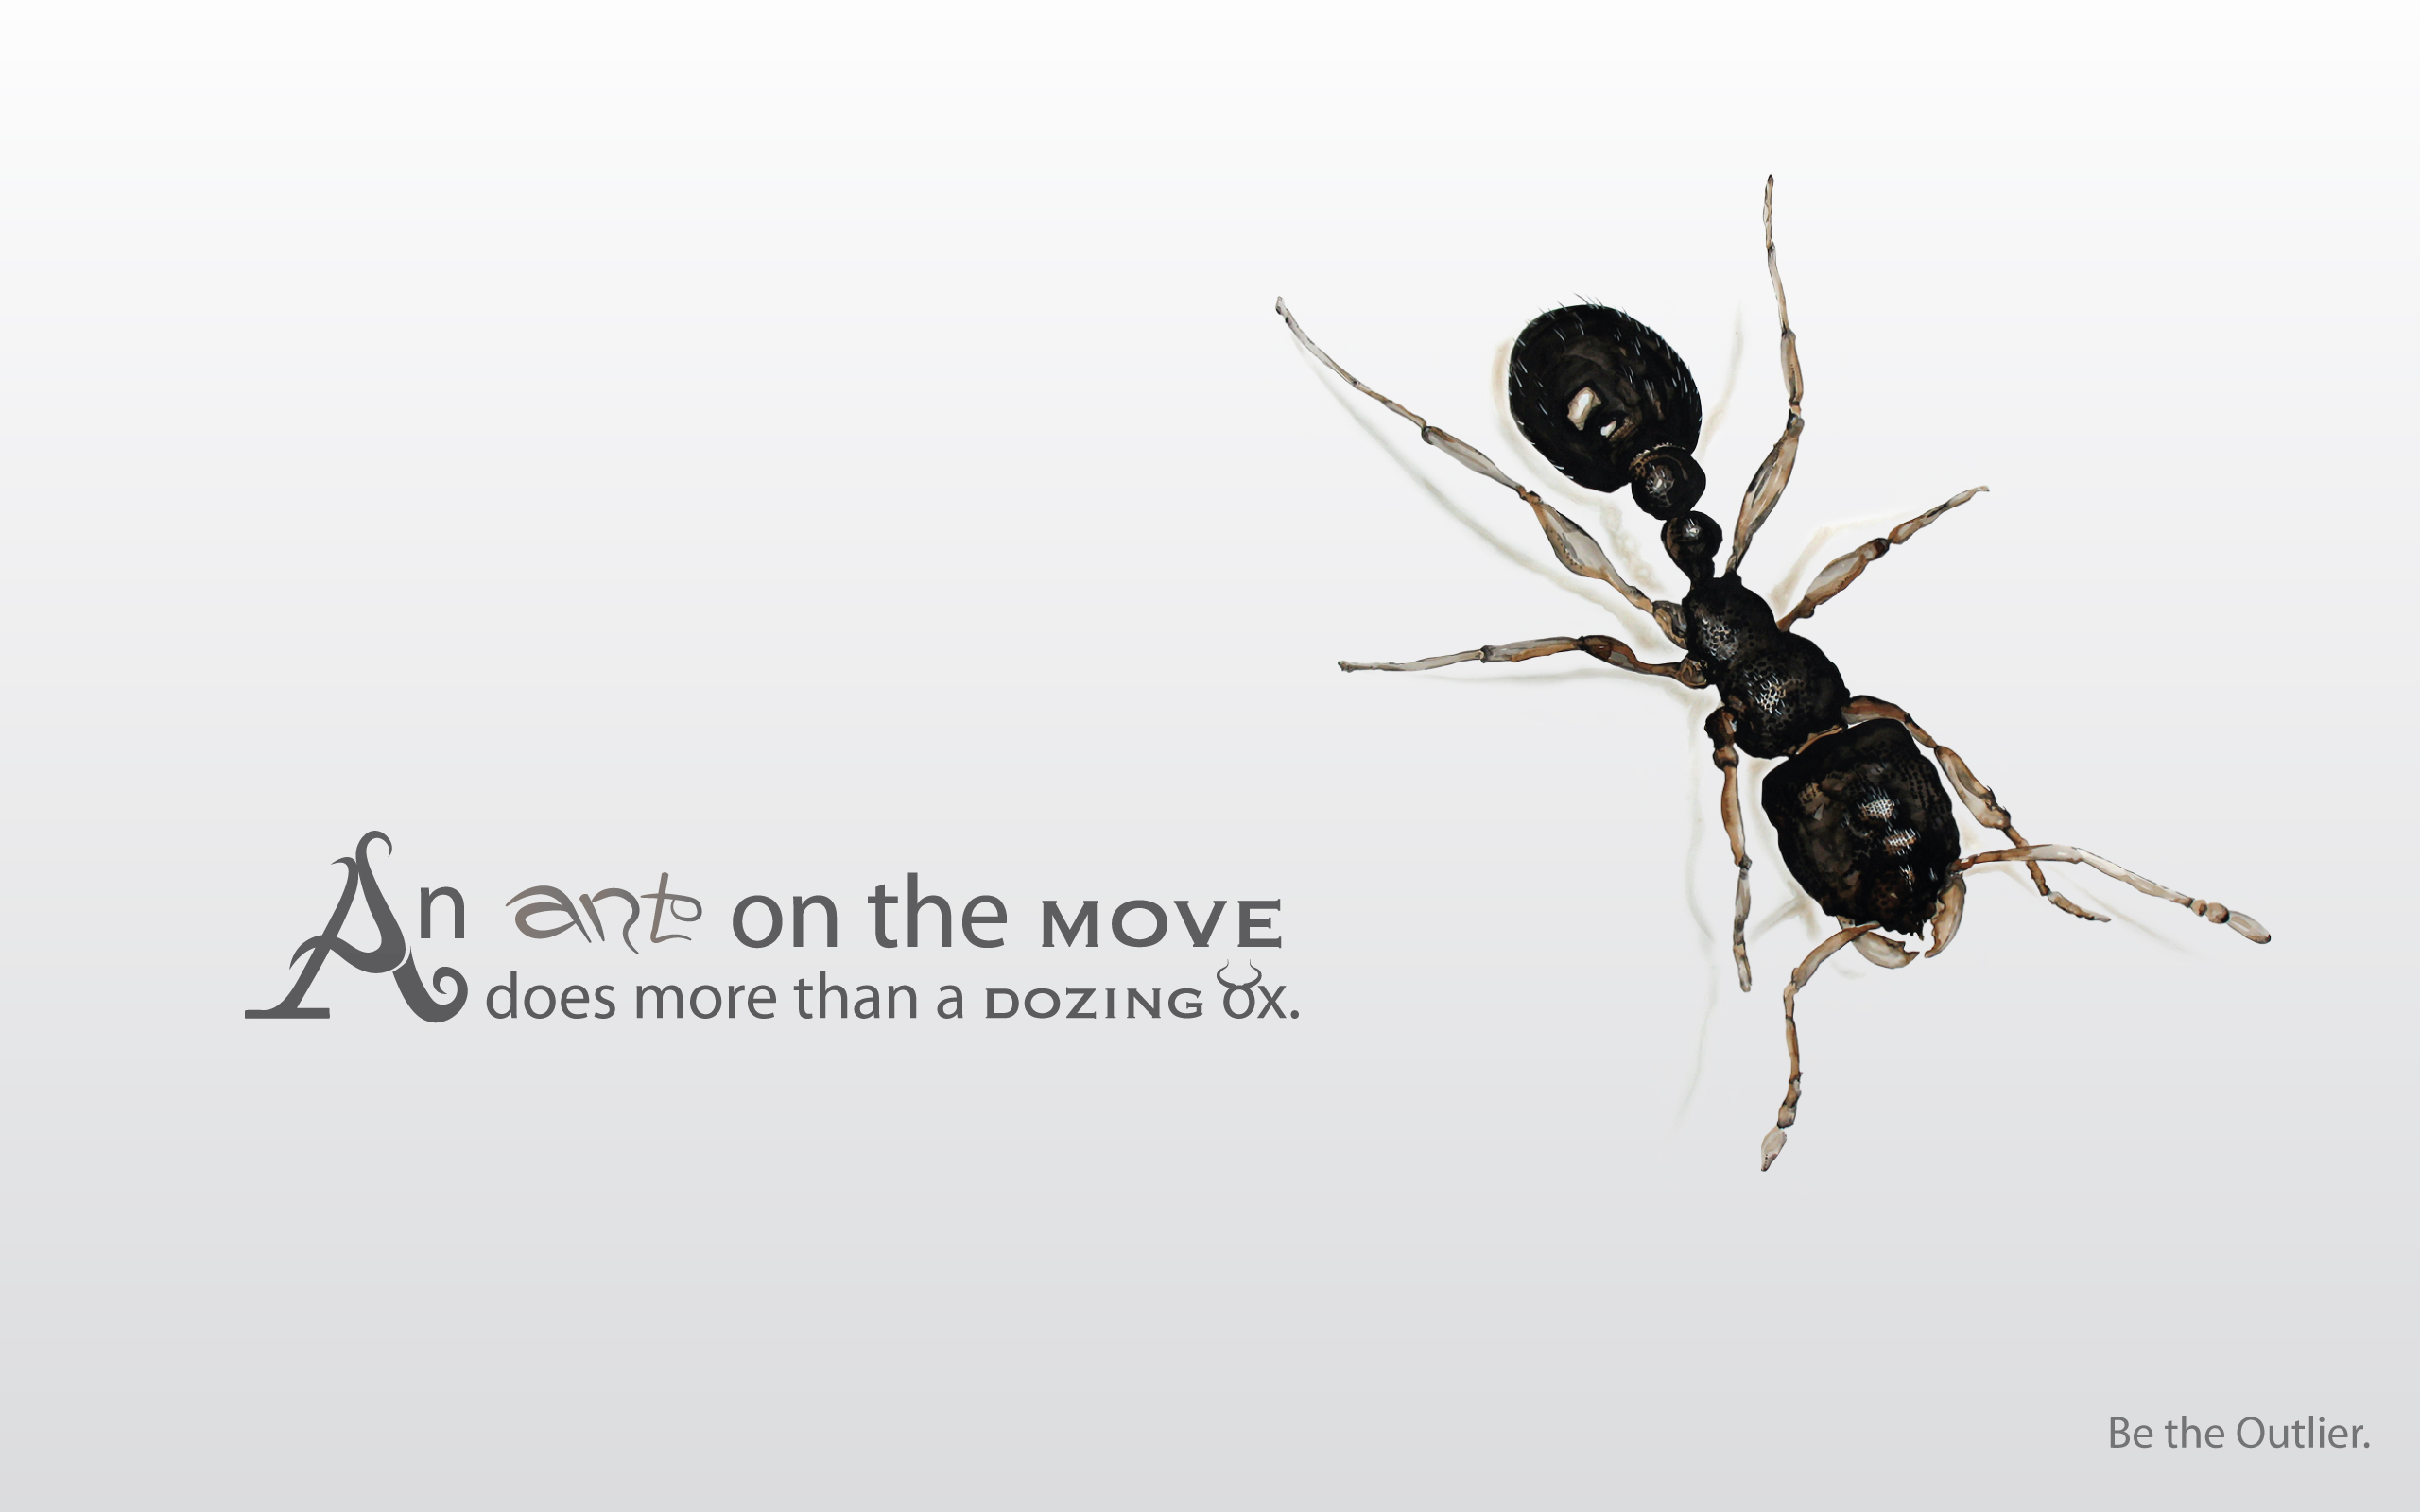 Inspirational Quotes Wallpapers Hd 1366x768 Ant Full Hd Wallpaper And Background Image 2560x1600